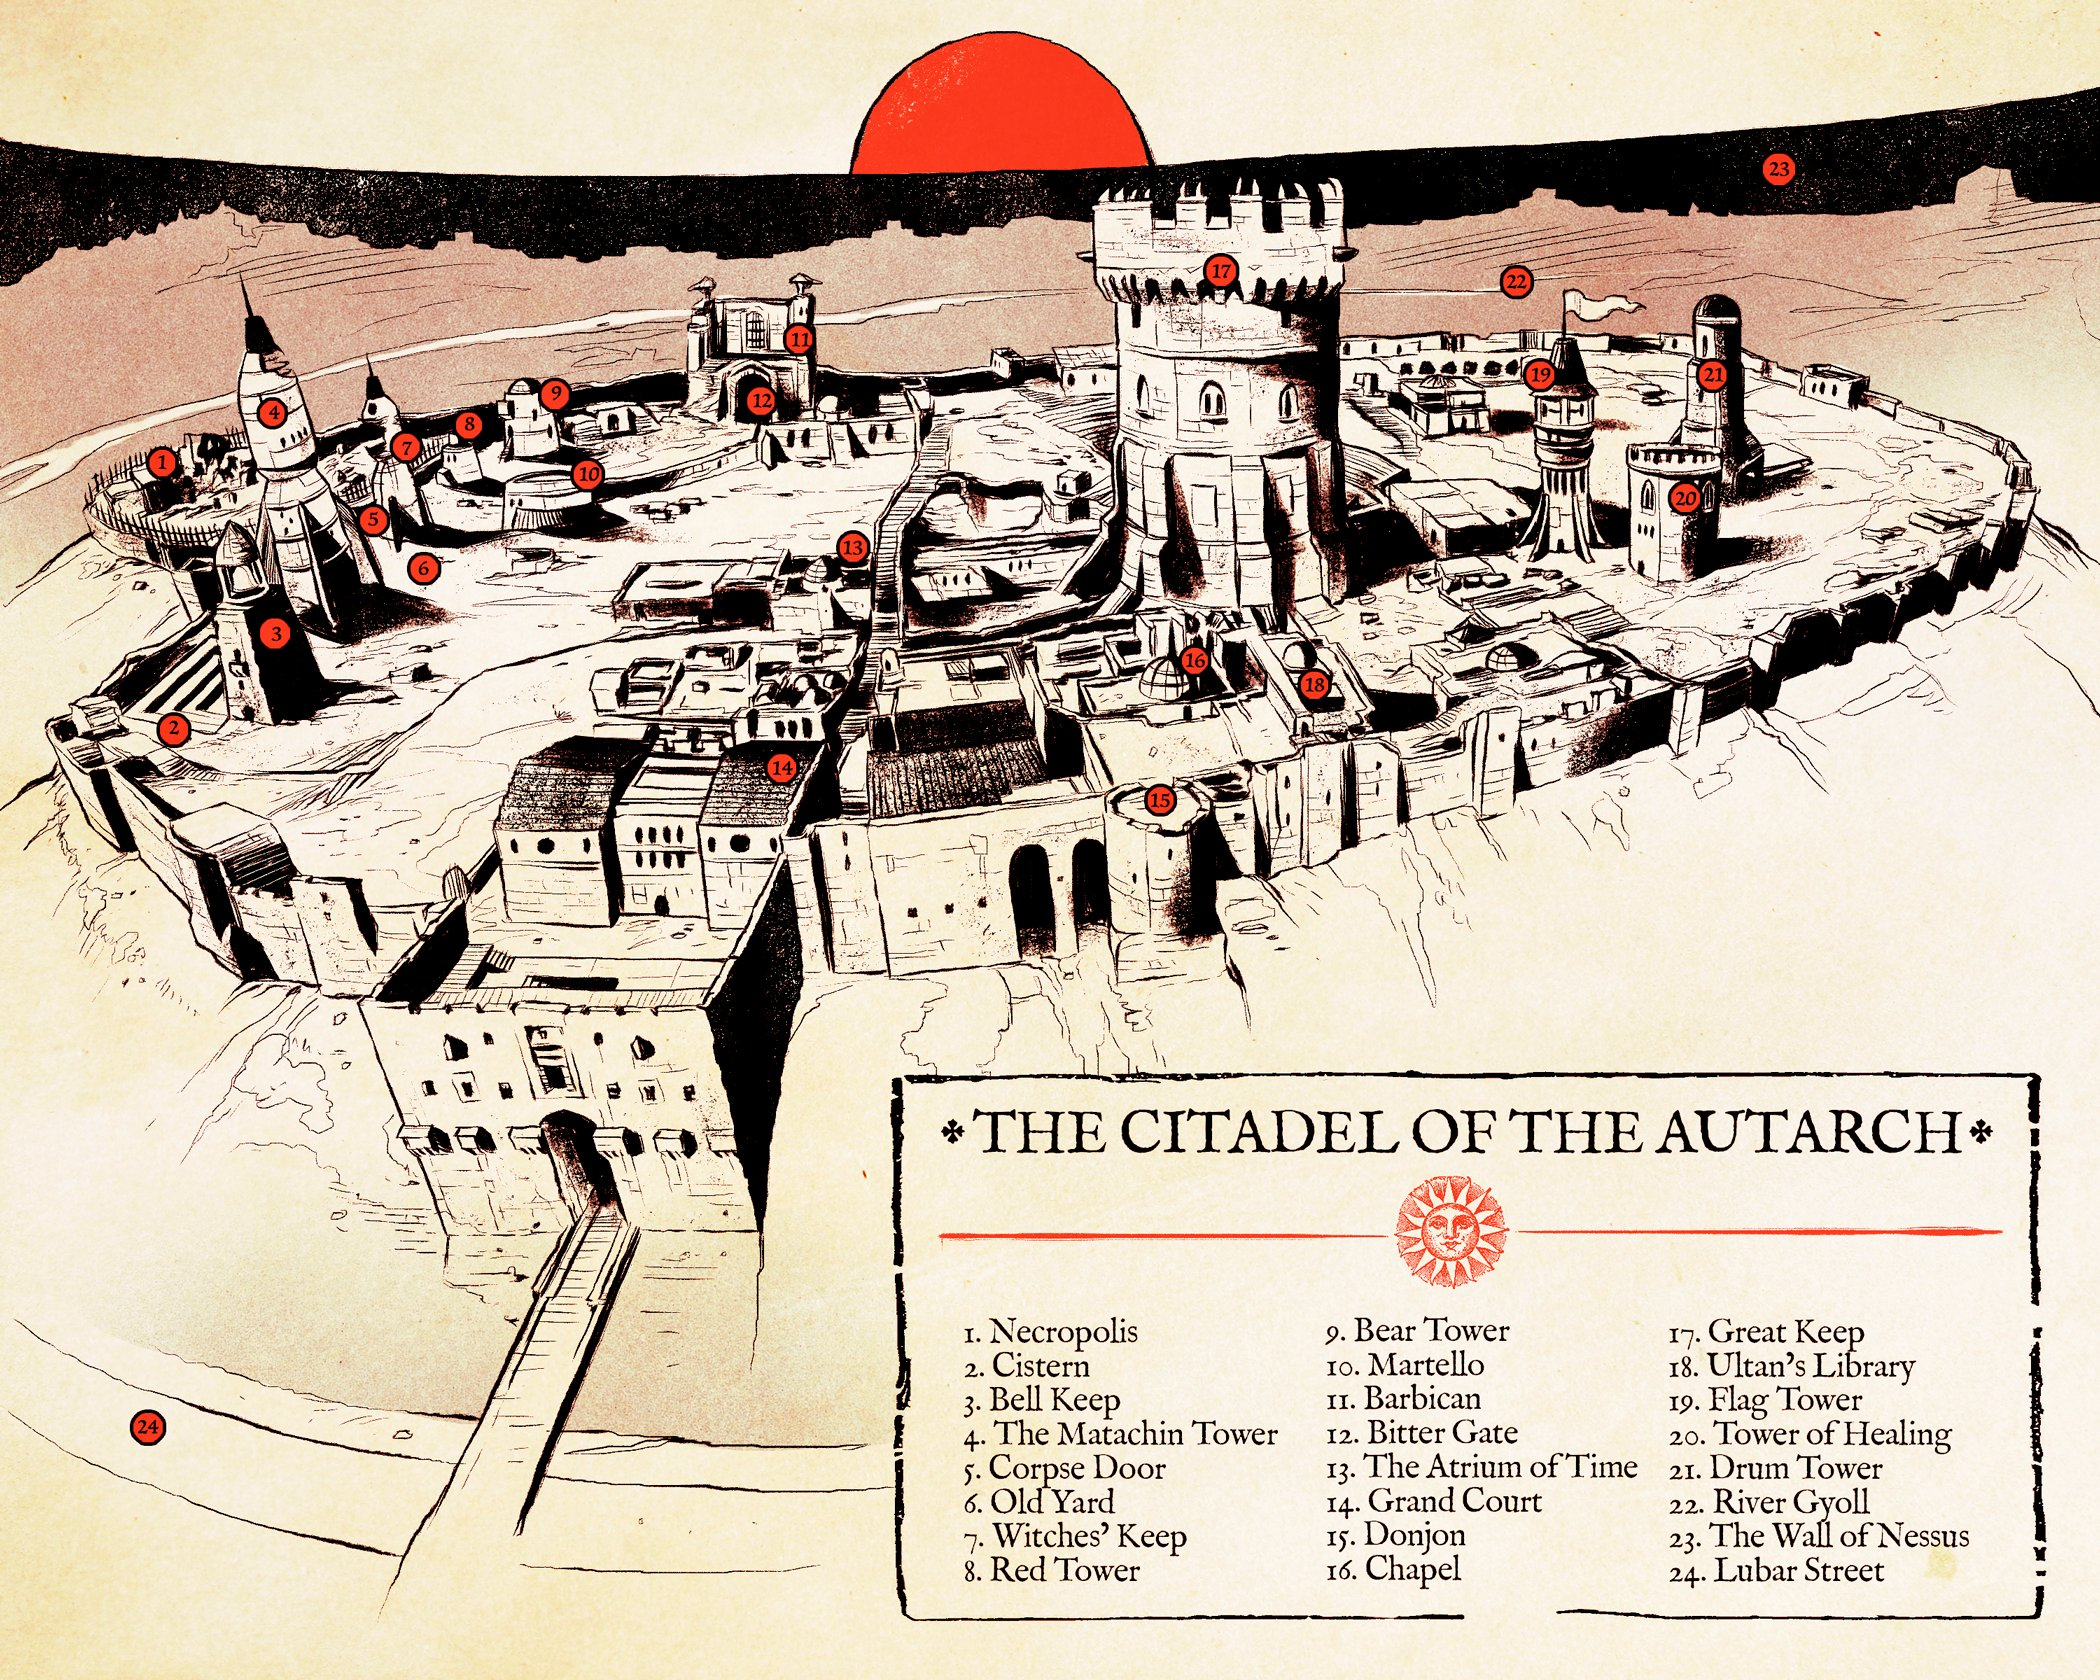 Citadel of the Autarch